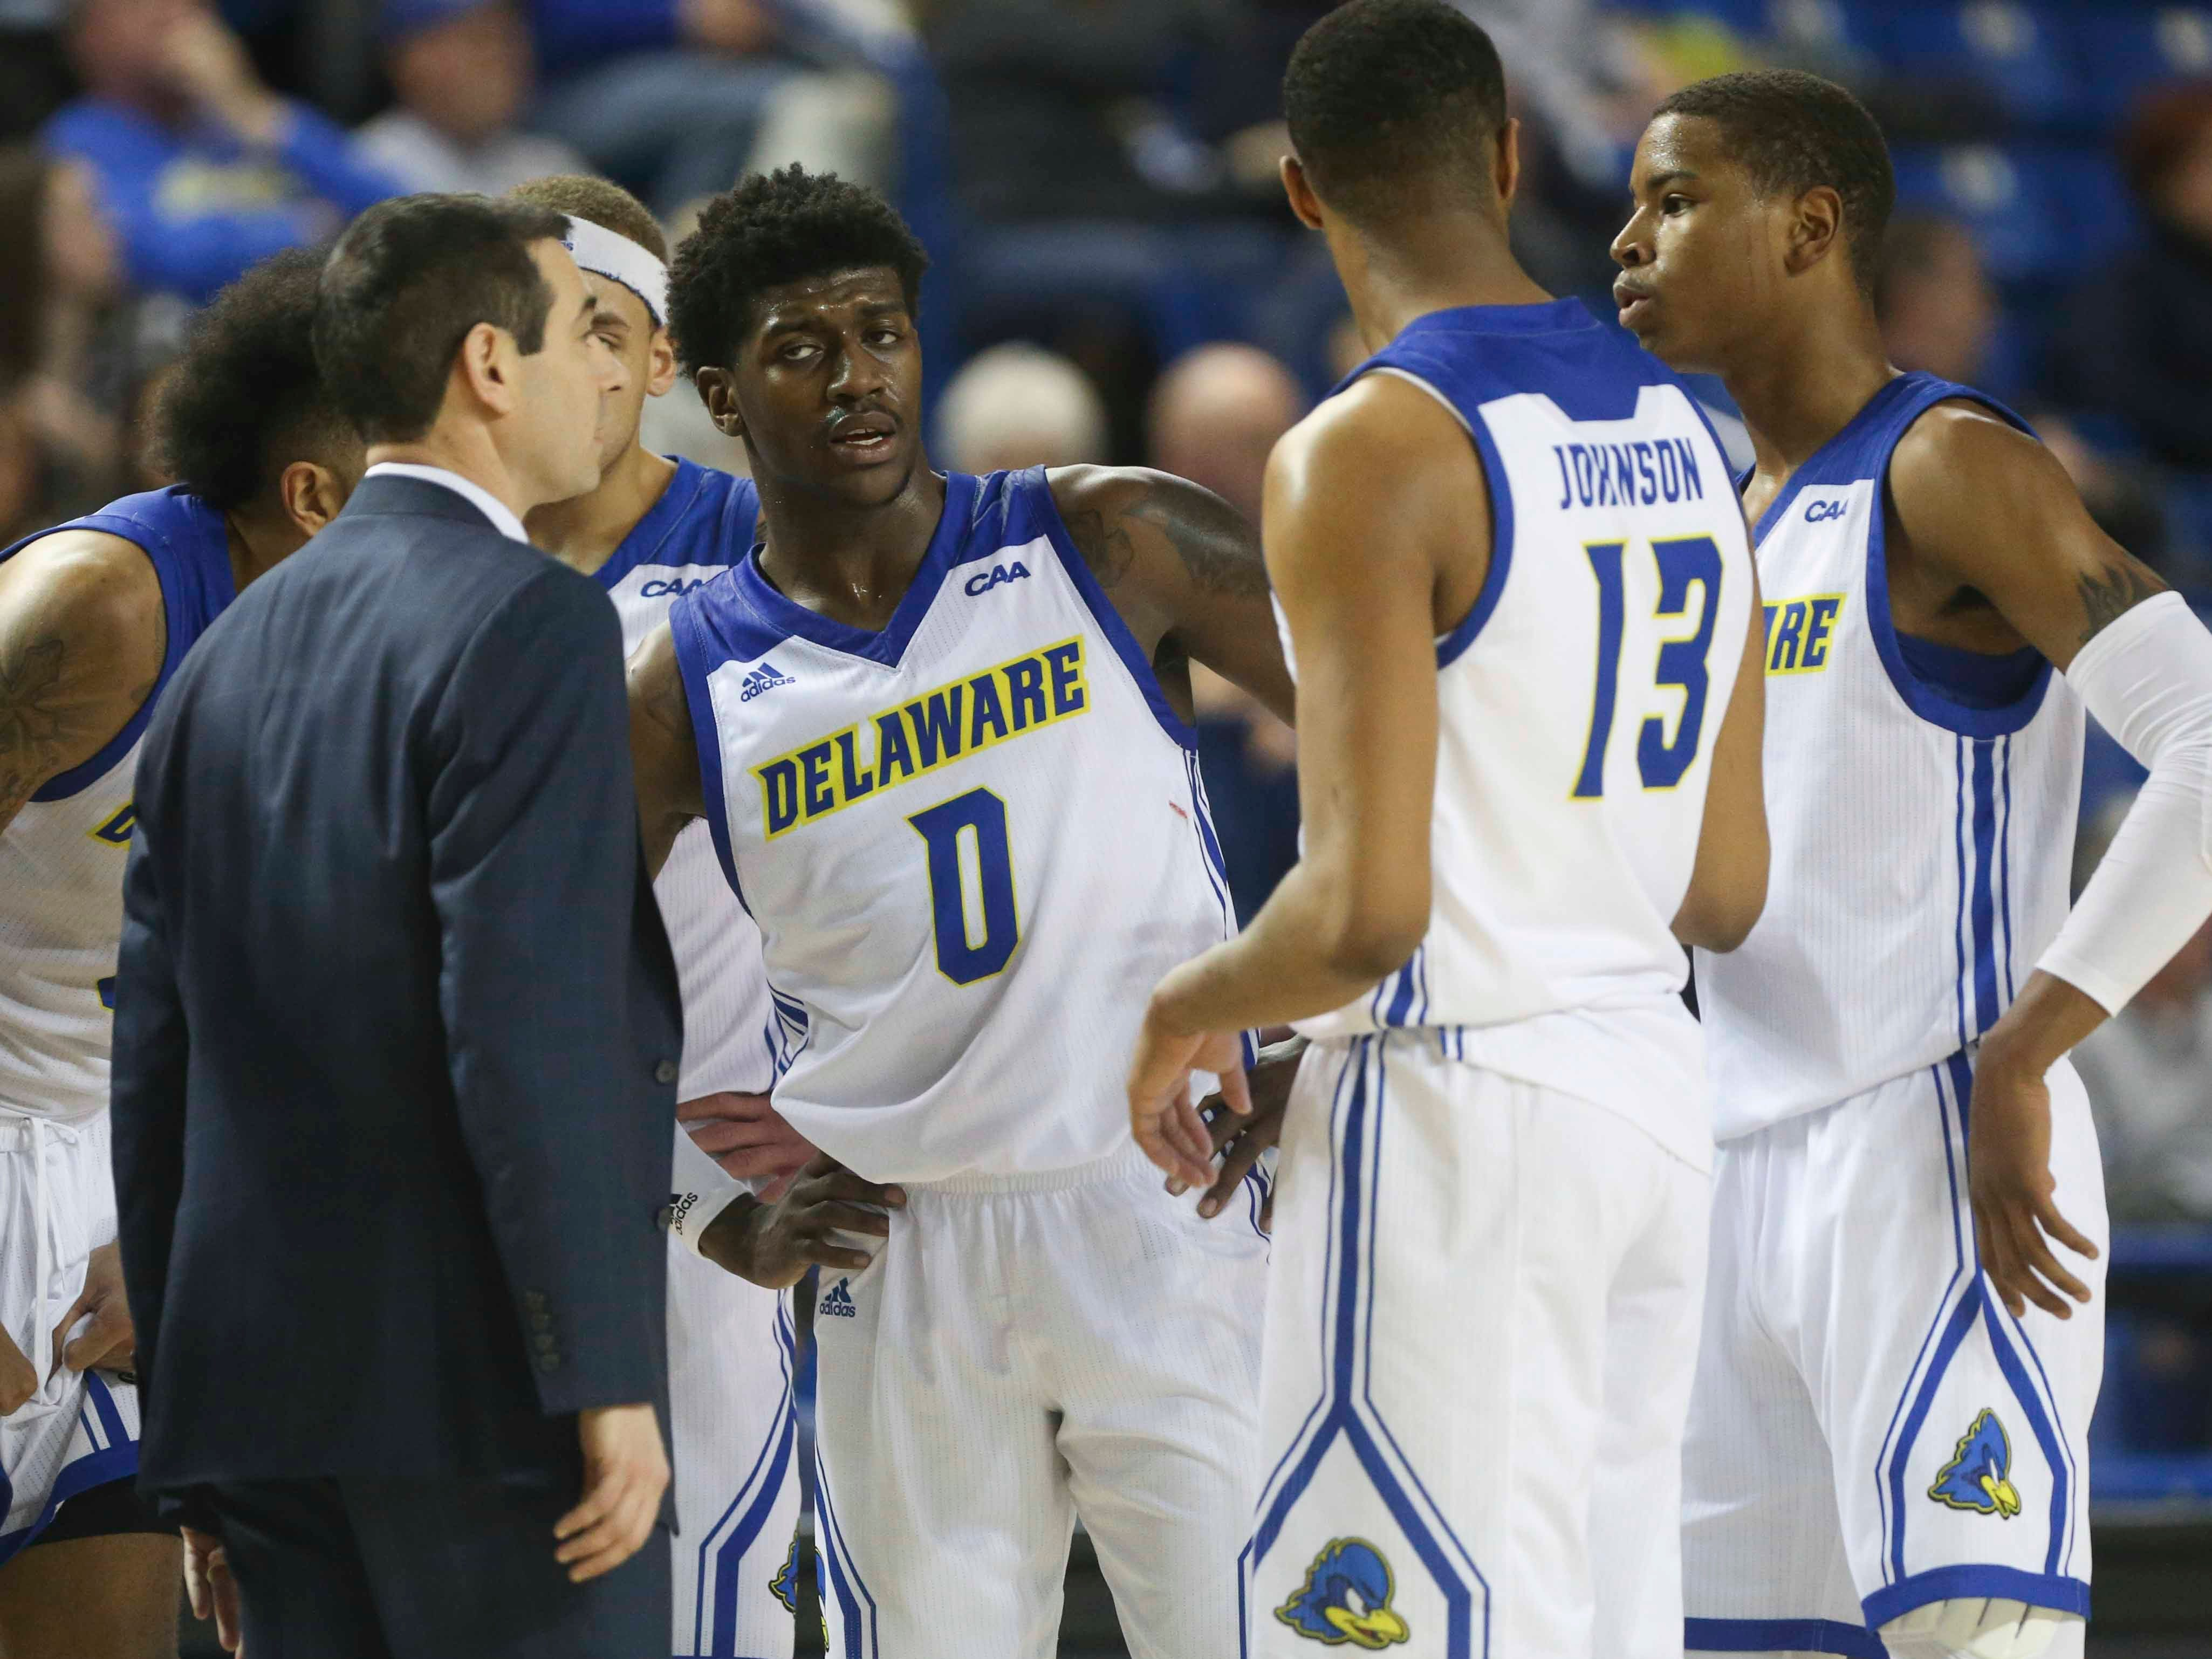 Delaware head coach Martin Ingelsby gets his team, including (from left) Ryan Allen, Ryan Johnson and Kevin Anderson together late in the second half of Delaware's 70-66 win at the Bob Carpenter Center Saturday.